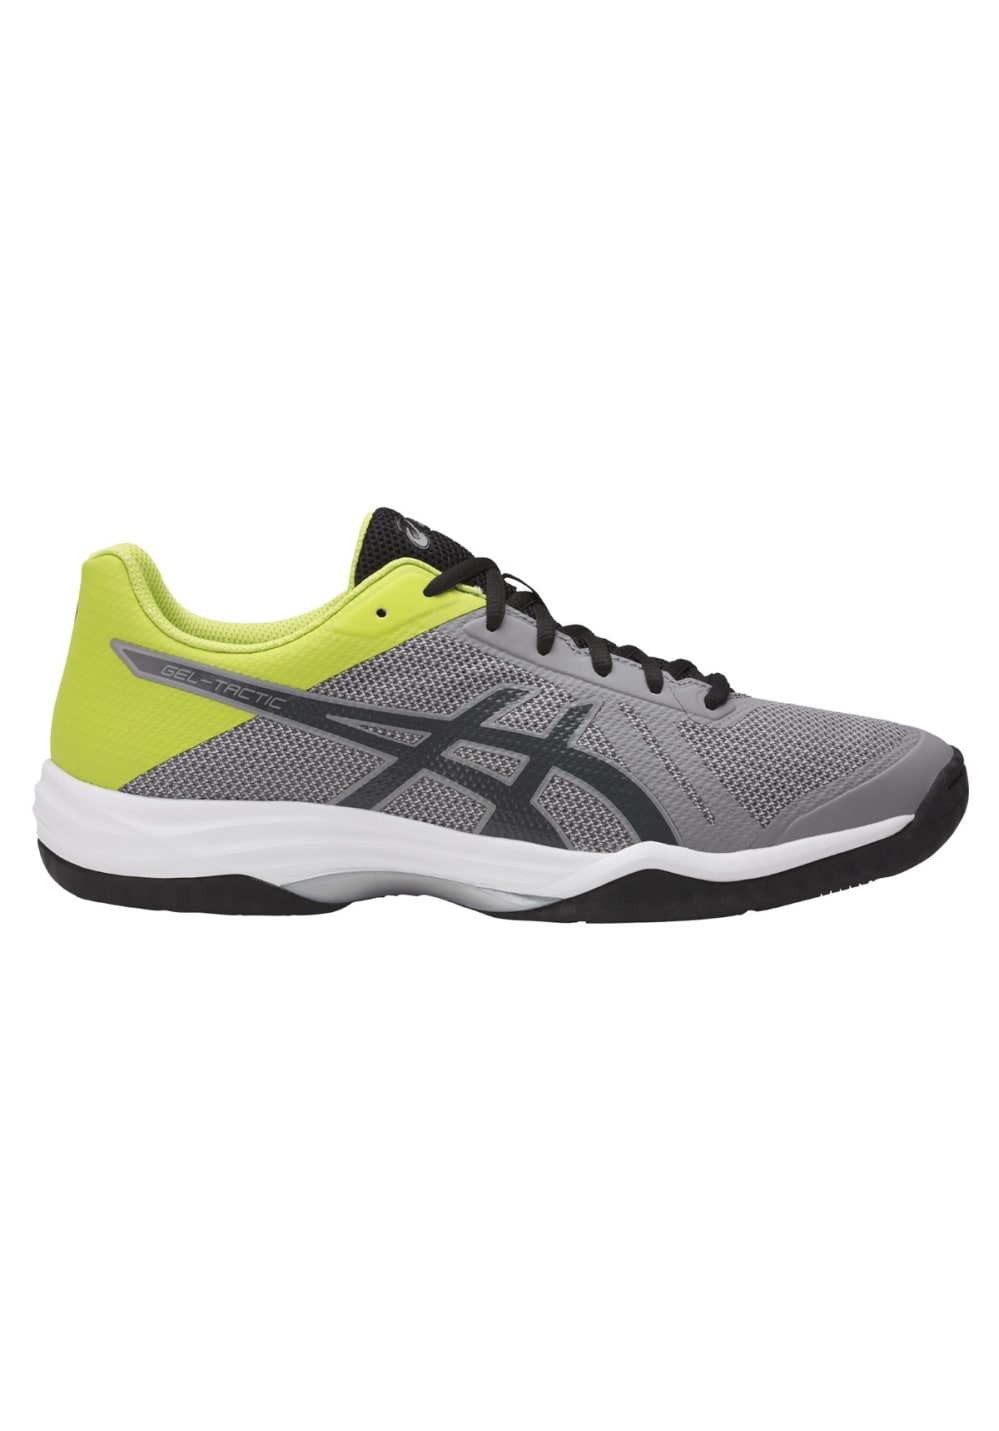 7e980319bad76 ASICS GEL-Tactic - Volleyball shoes for Men - Grey